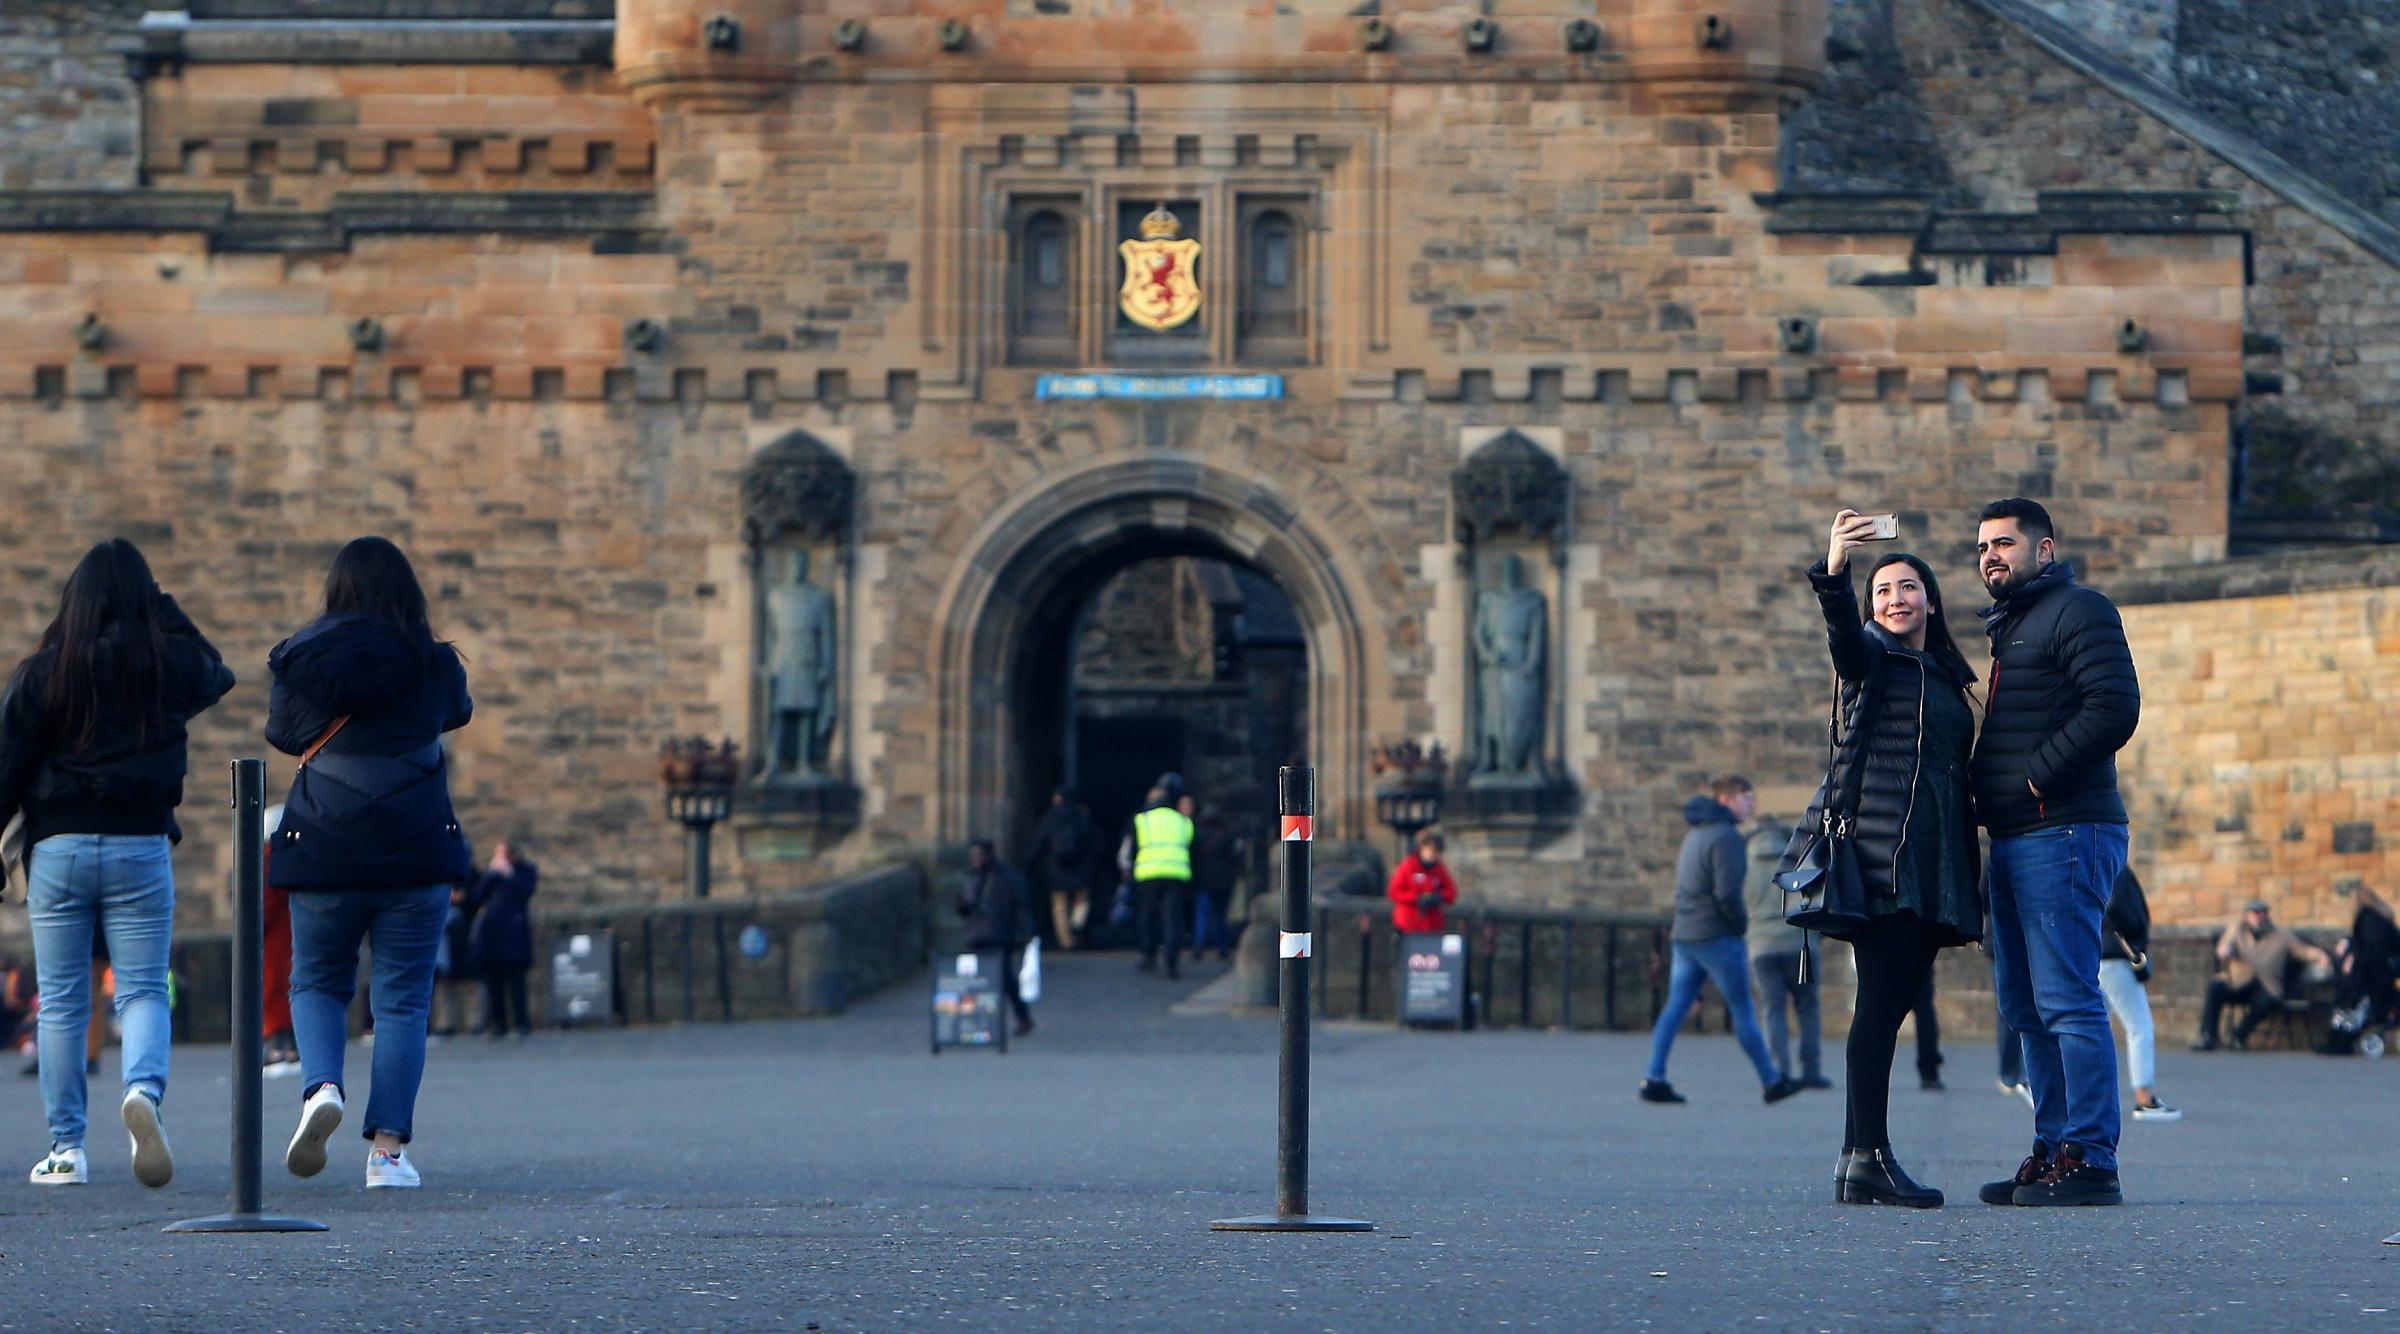 The council said the £2 per room per night figure 'includes a majority of Edinburgh-based businesses